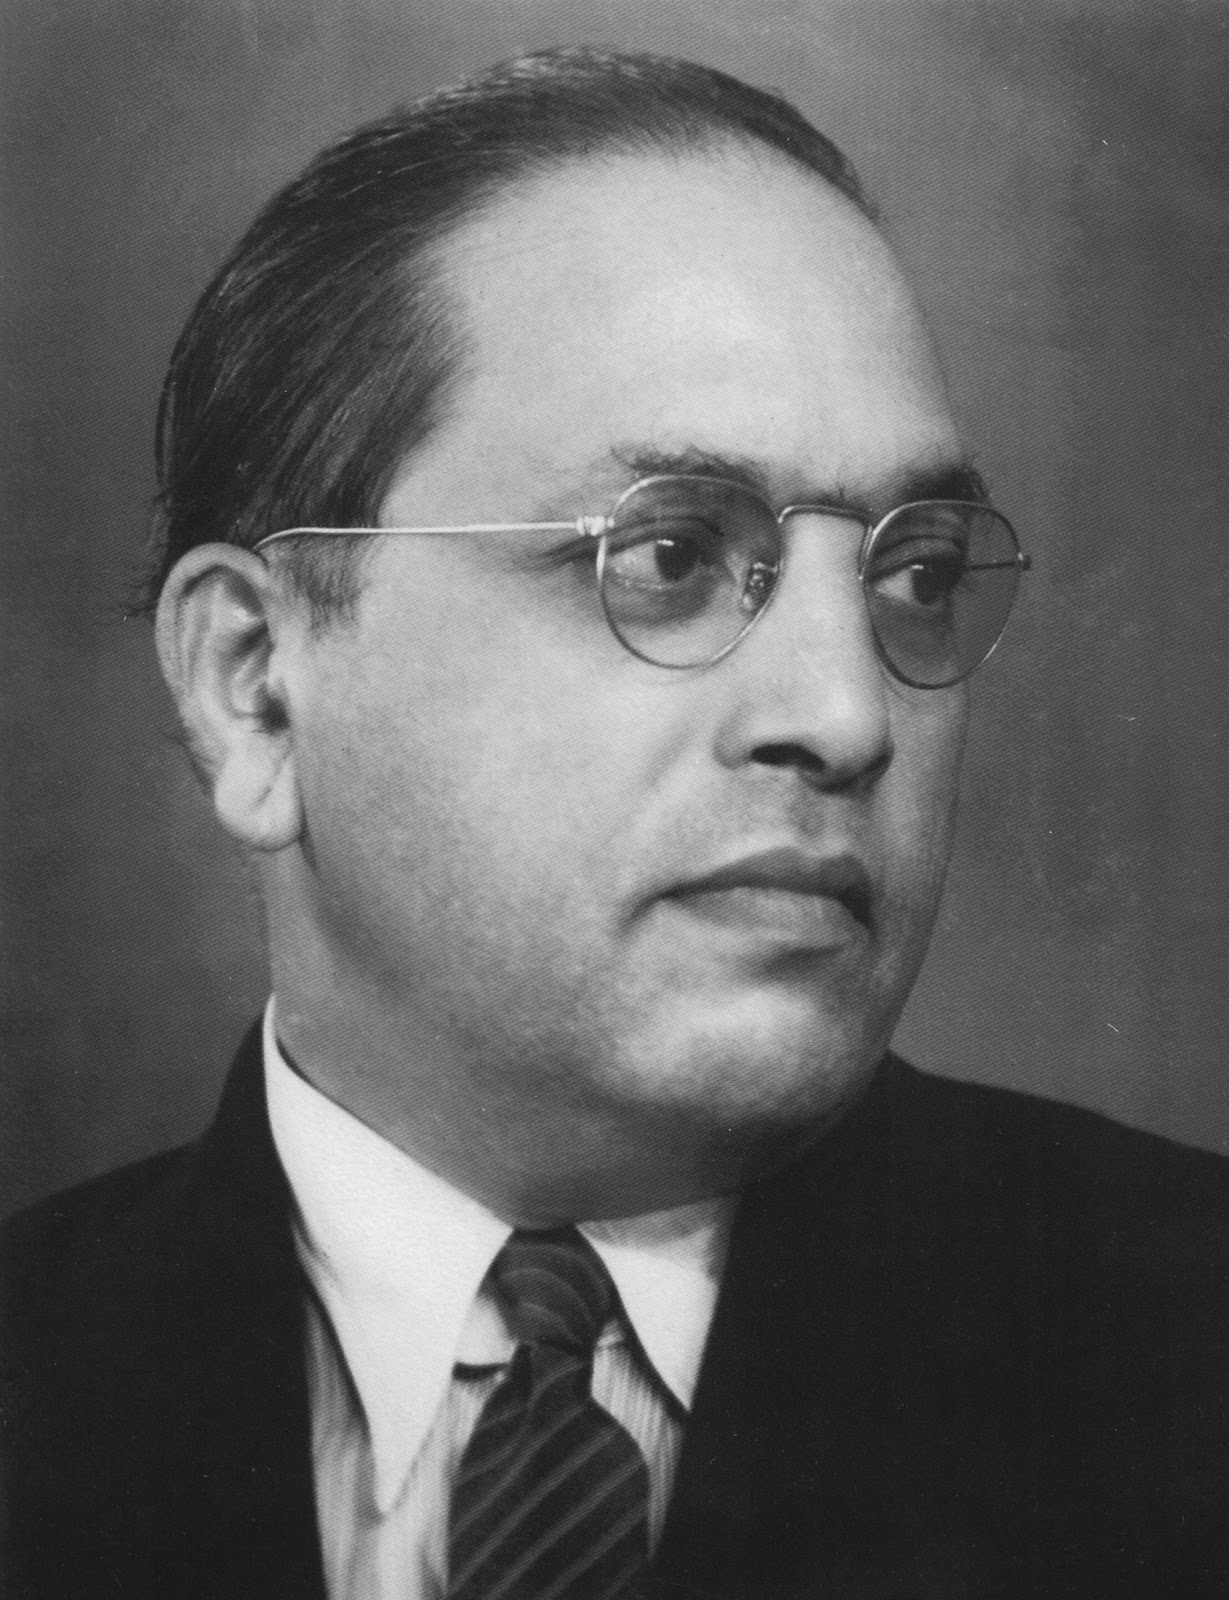 Dr. b r ambedkar is in image.